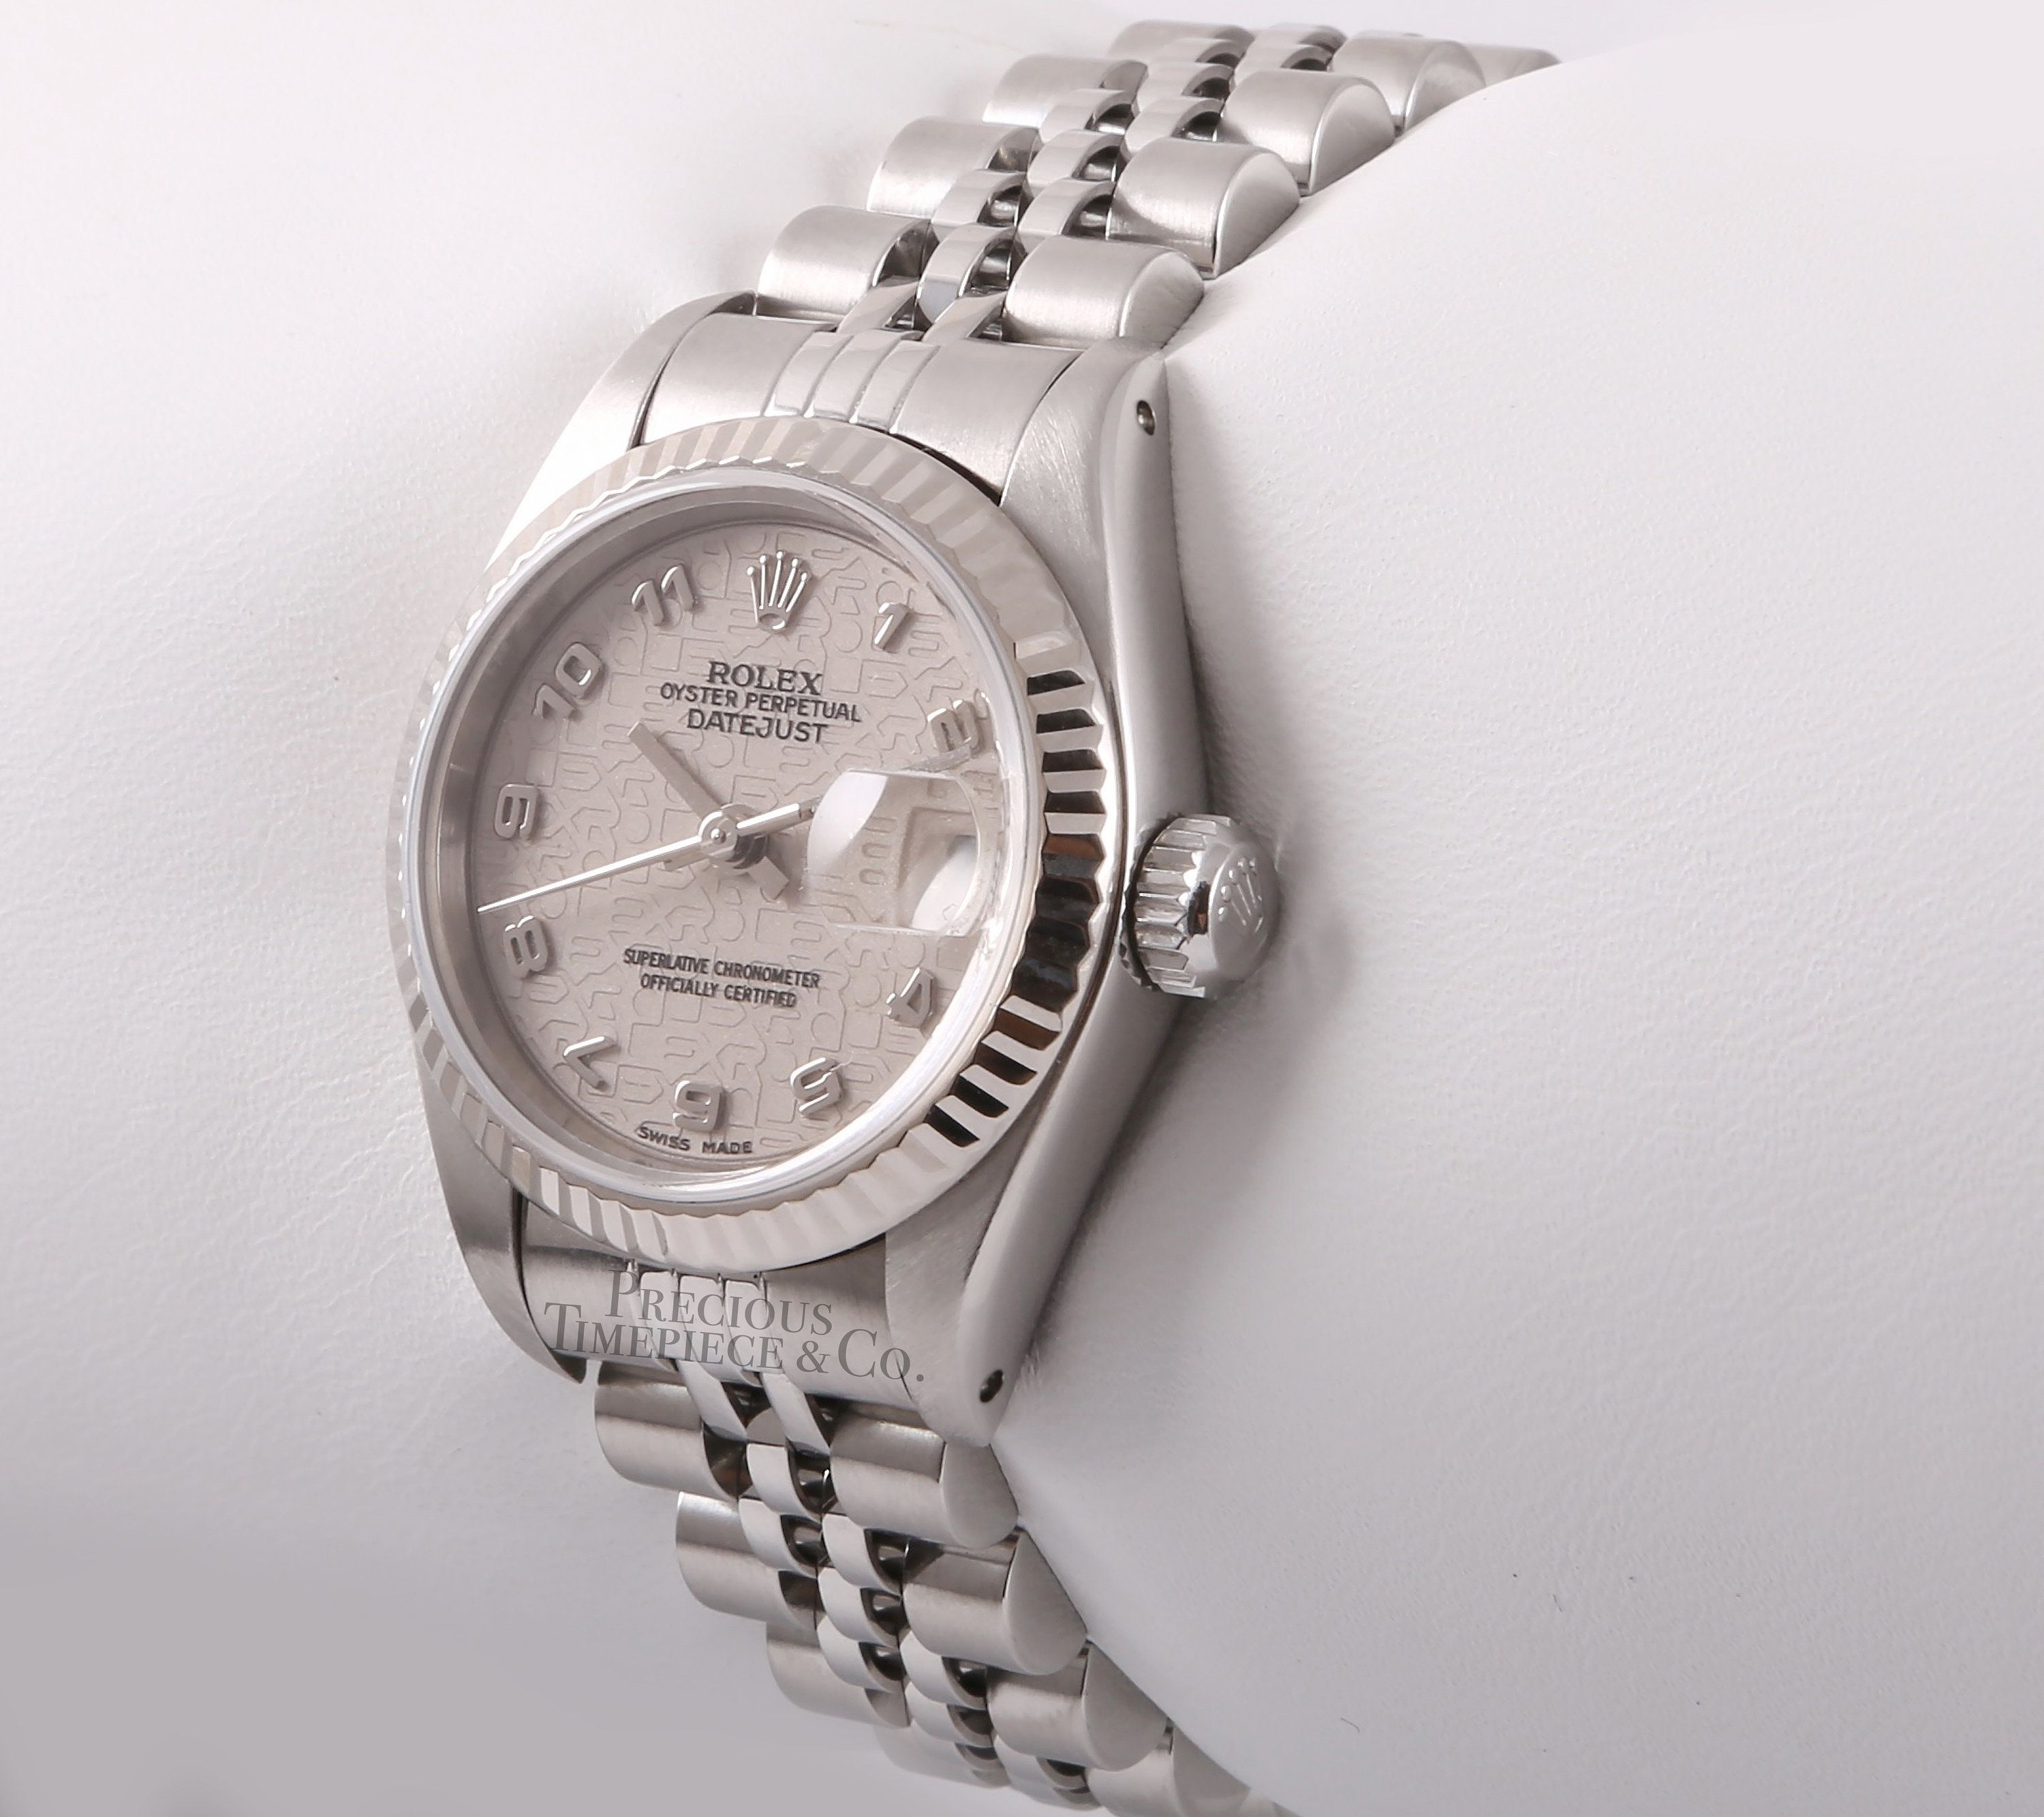 Rolex Lady 26mm Datejust Stainless Steel-18k Fluted Bezel-Ivory Jubilee Dial  #bezel #Datejust #fluted #ivory #Rolex #stainless #Steel #stainlesssteelrolex